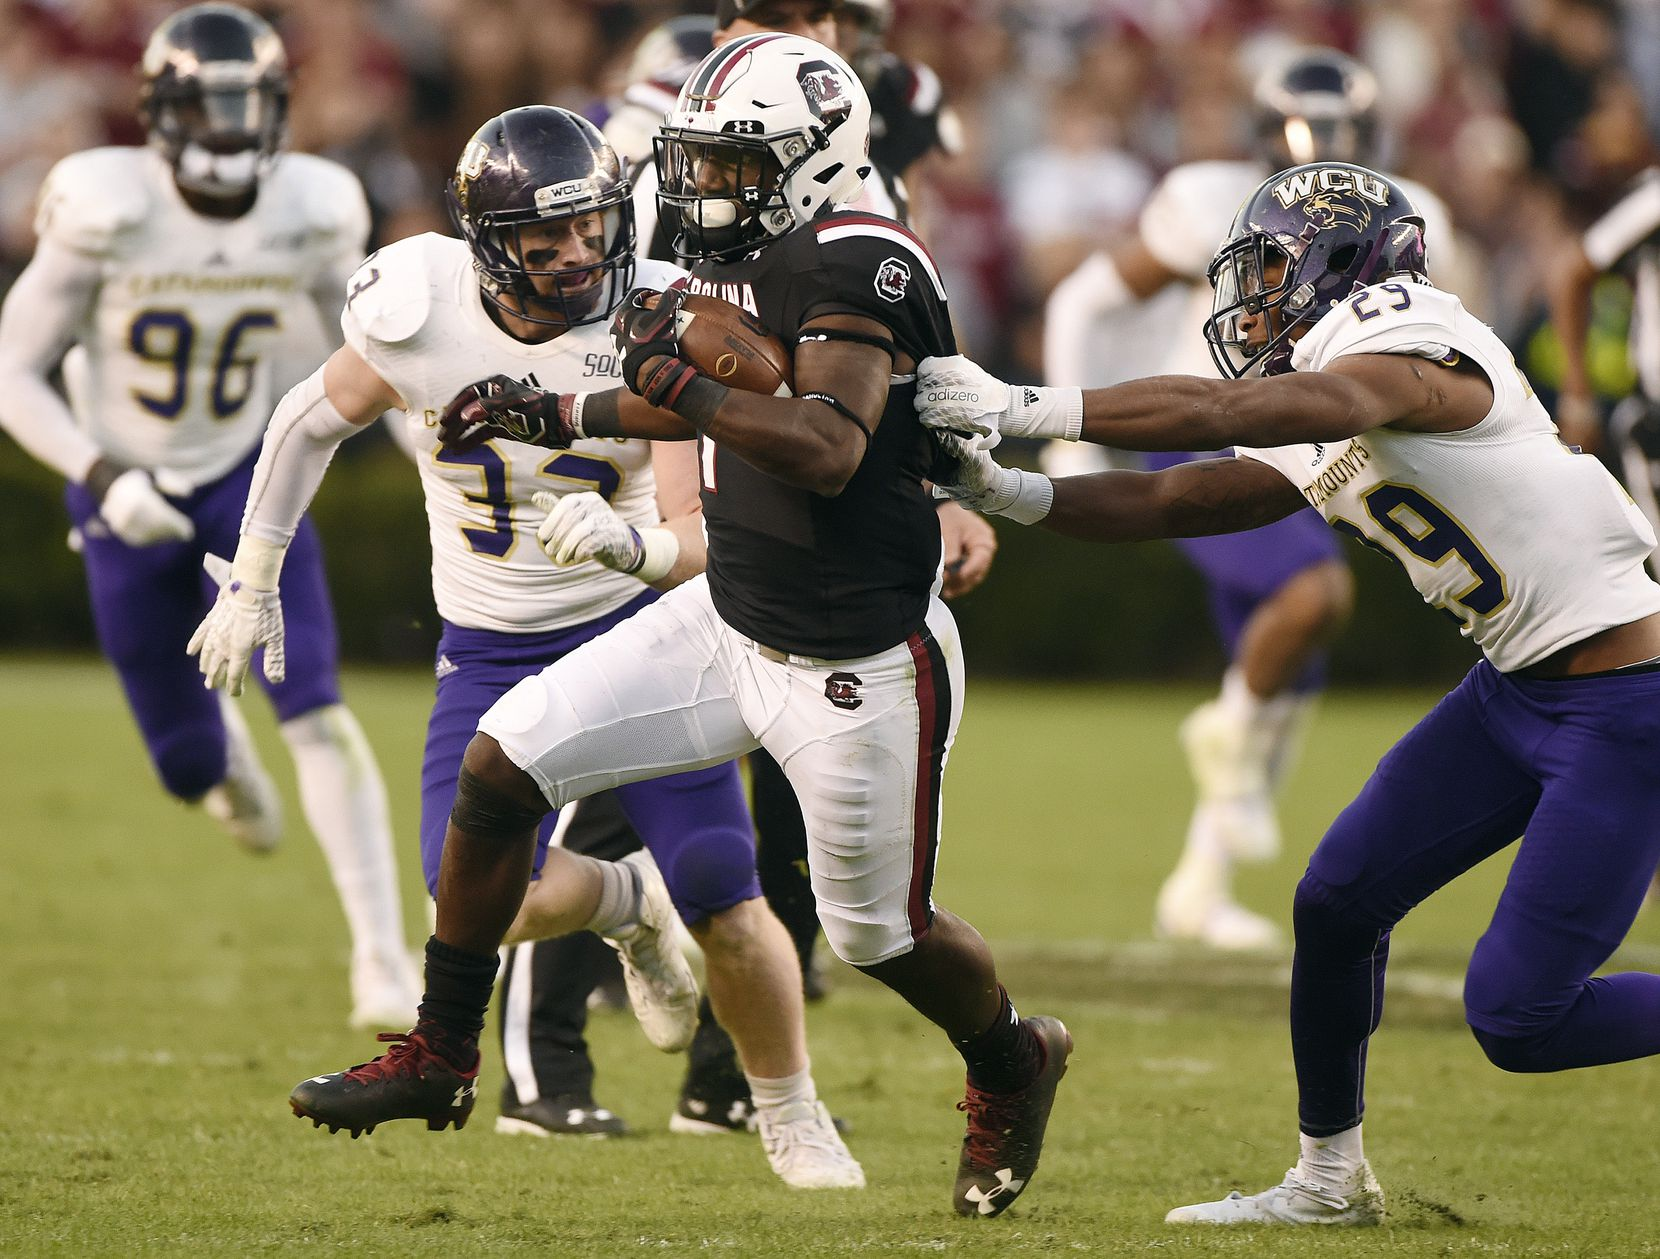 COLUMBIA, SC - NOVEMBER 19: Wide receiver Deebo Samuel #1 of the South Carolina Gamecocks breaks a tackle by defensive back Marvin Tillman #29 of the Western Carolina Catamounts on November 19, 2016 at Williams-Brice Stadium in Columbia, South Carolina.  (Photo by Todd Bennett/GettyImages)